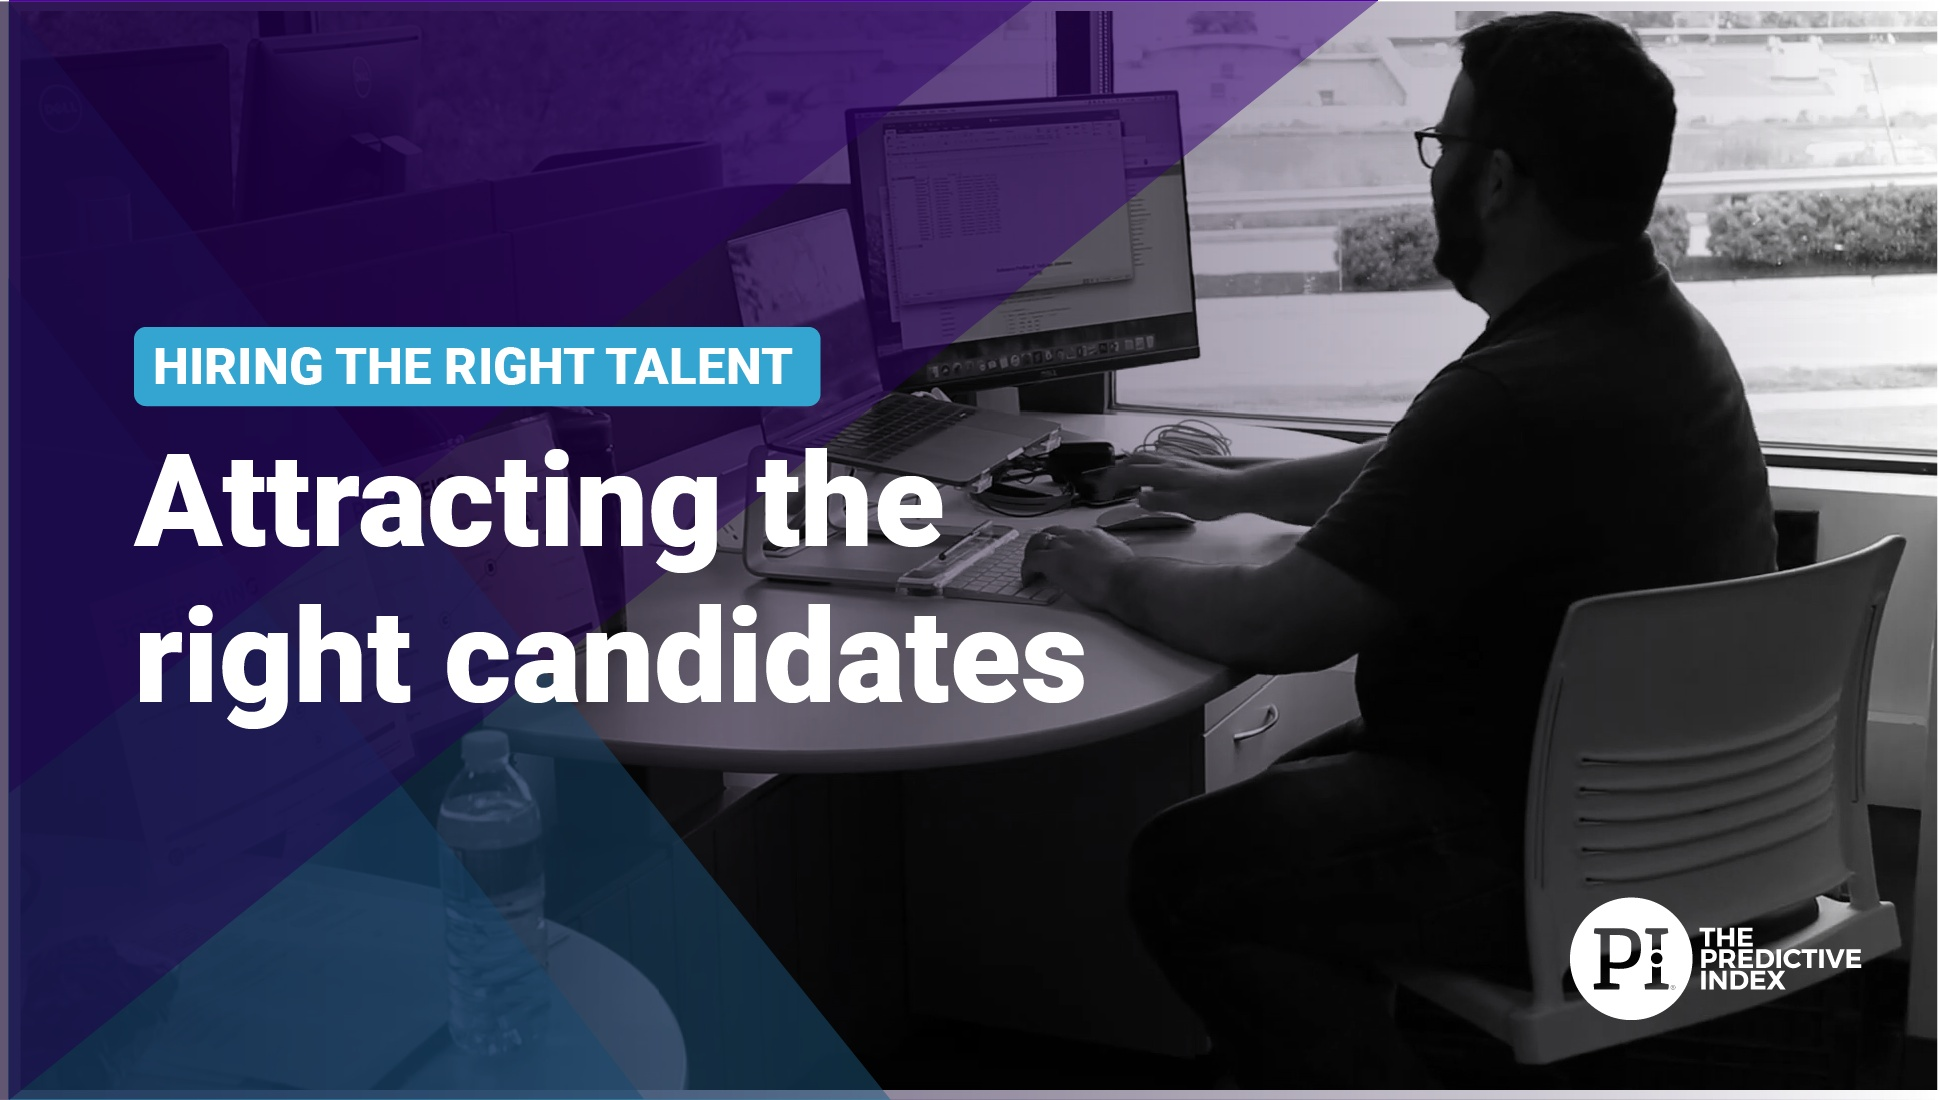 Attracting the right candidates